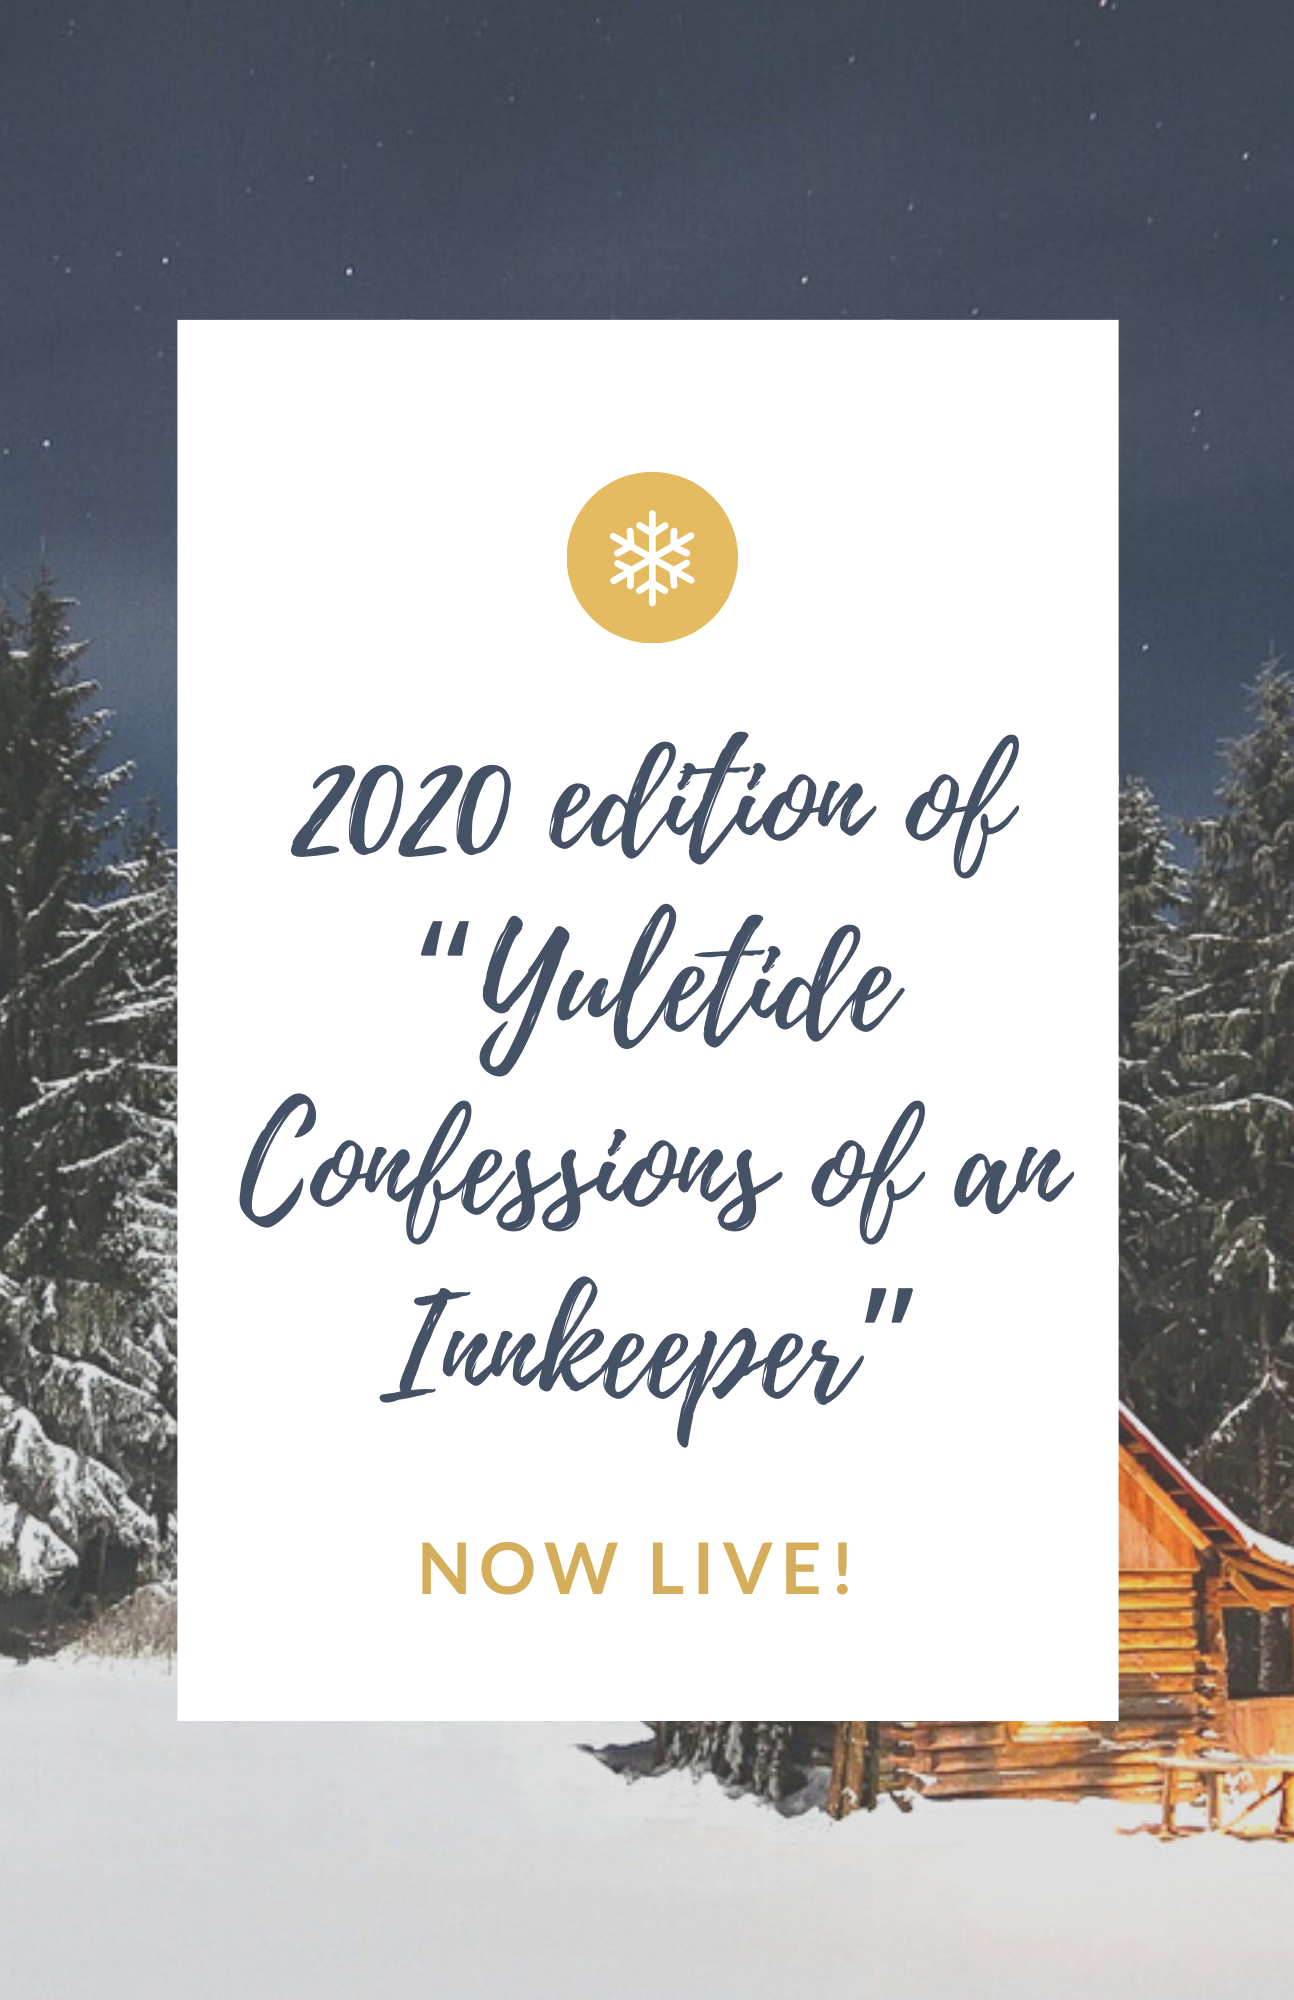 image that says 2020 edition of yuletide confessions of an innkeeper now available